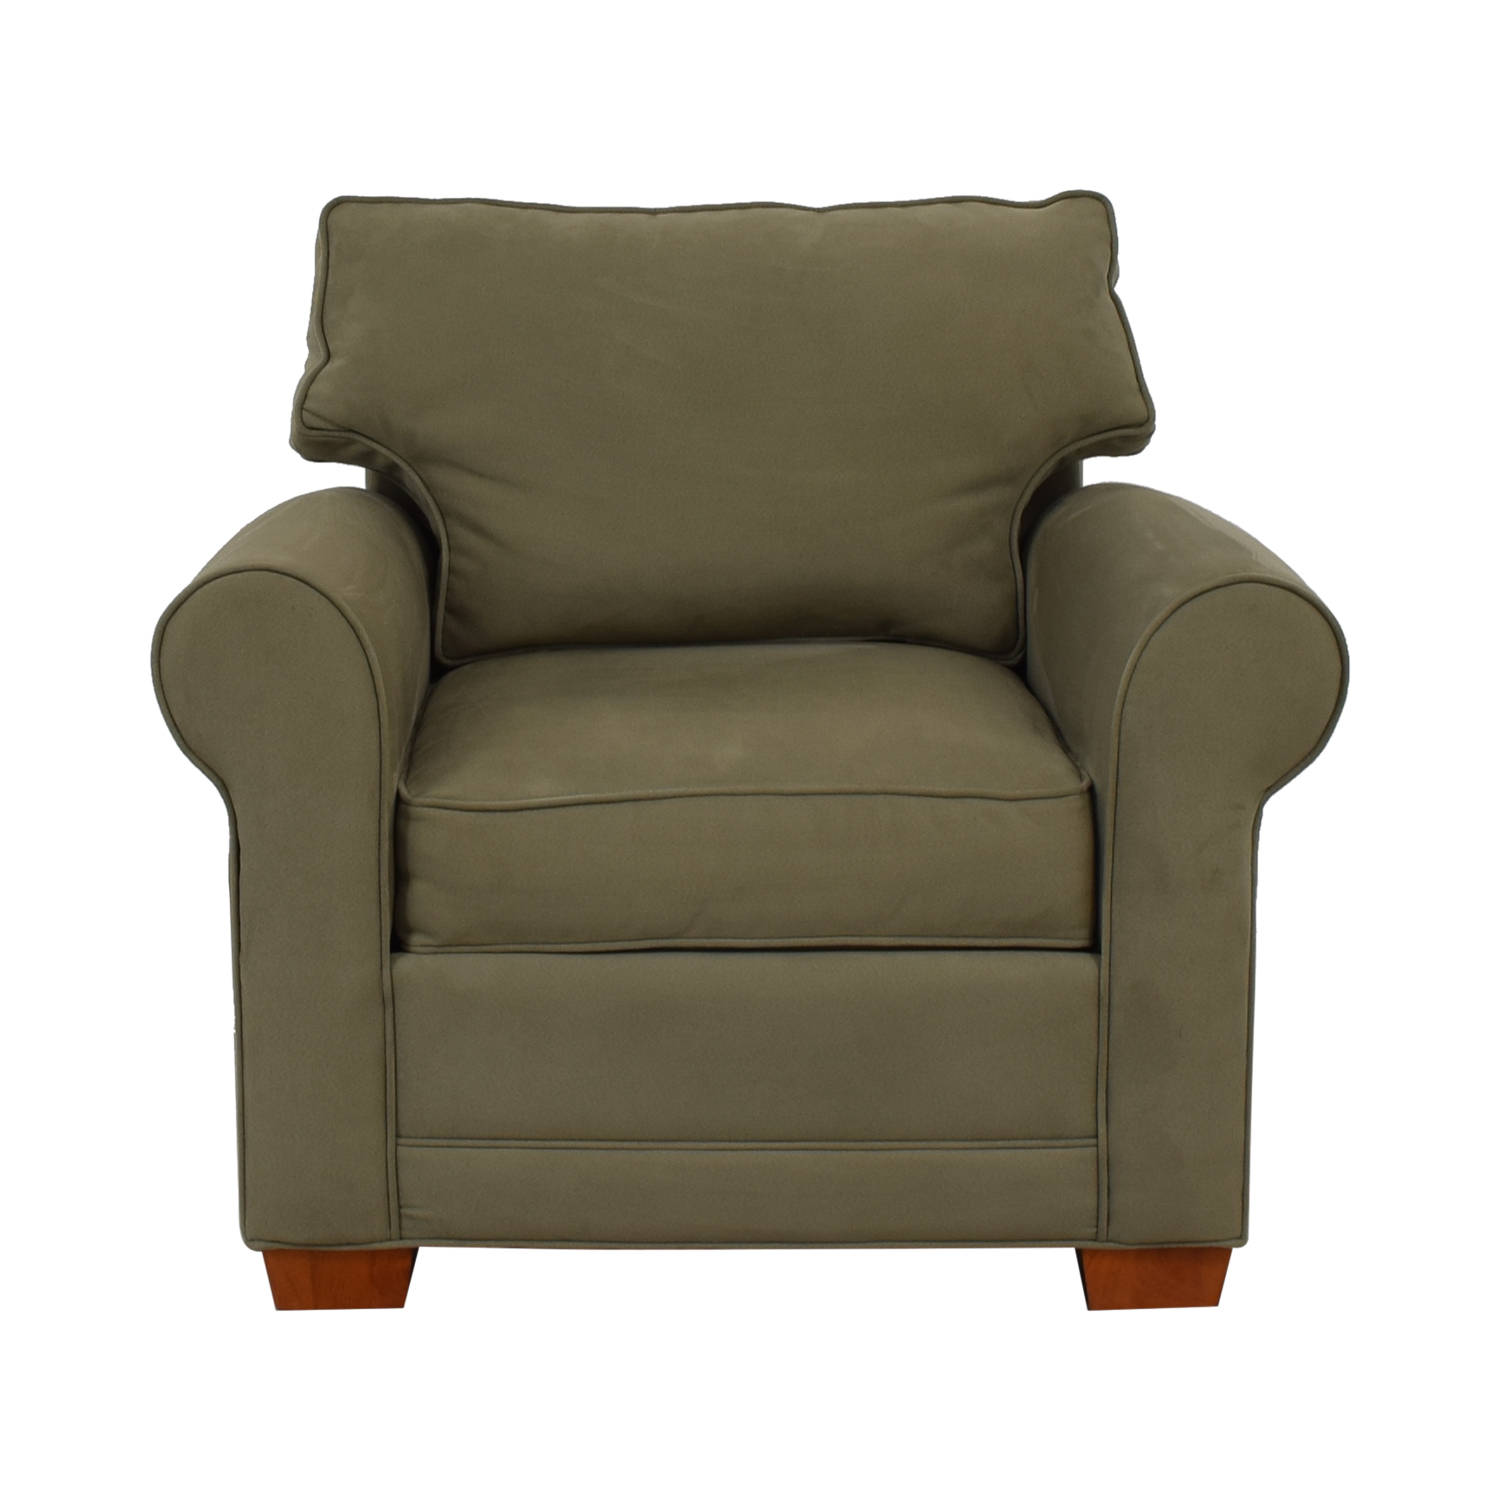 Raymour & Flanigan Raymour & Flanigan Olive Green Accent Chair for sale